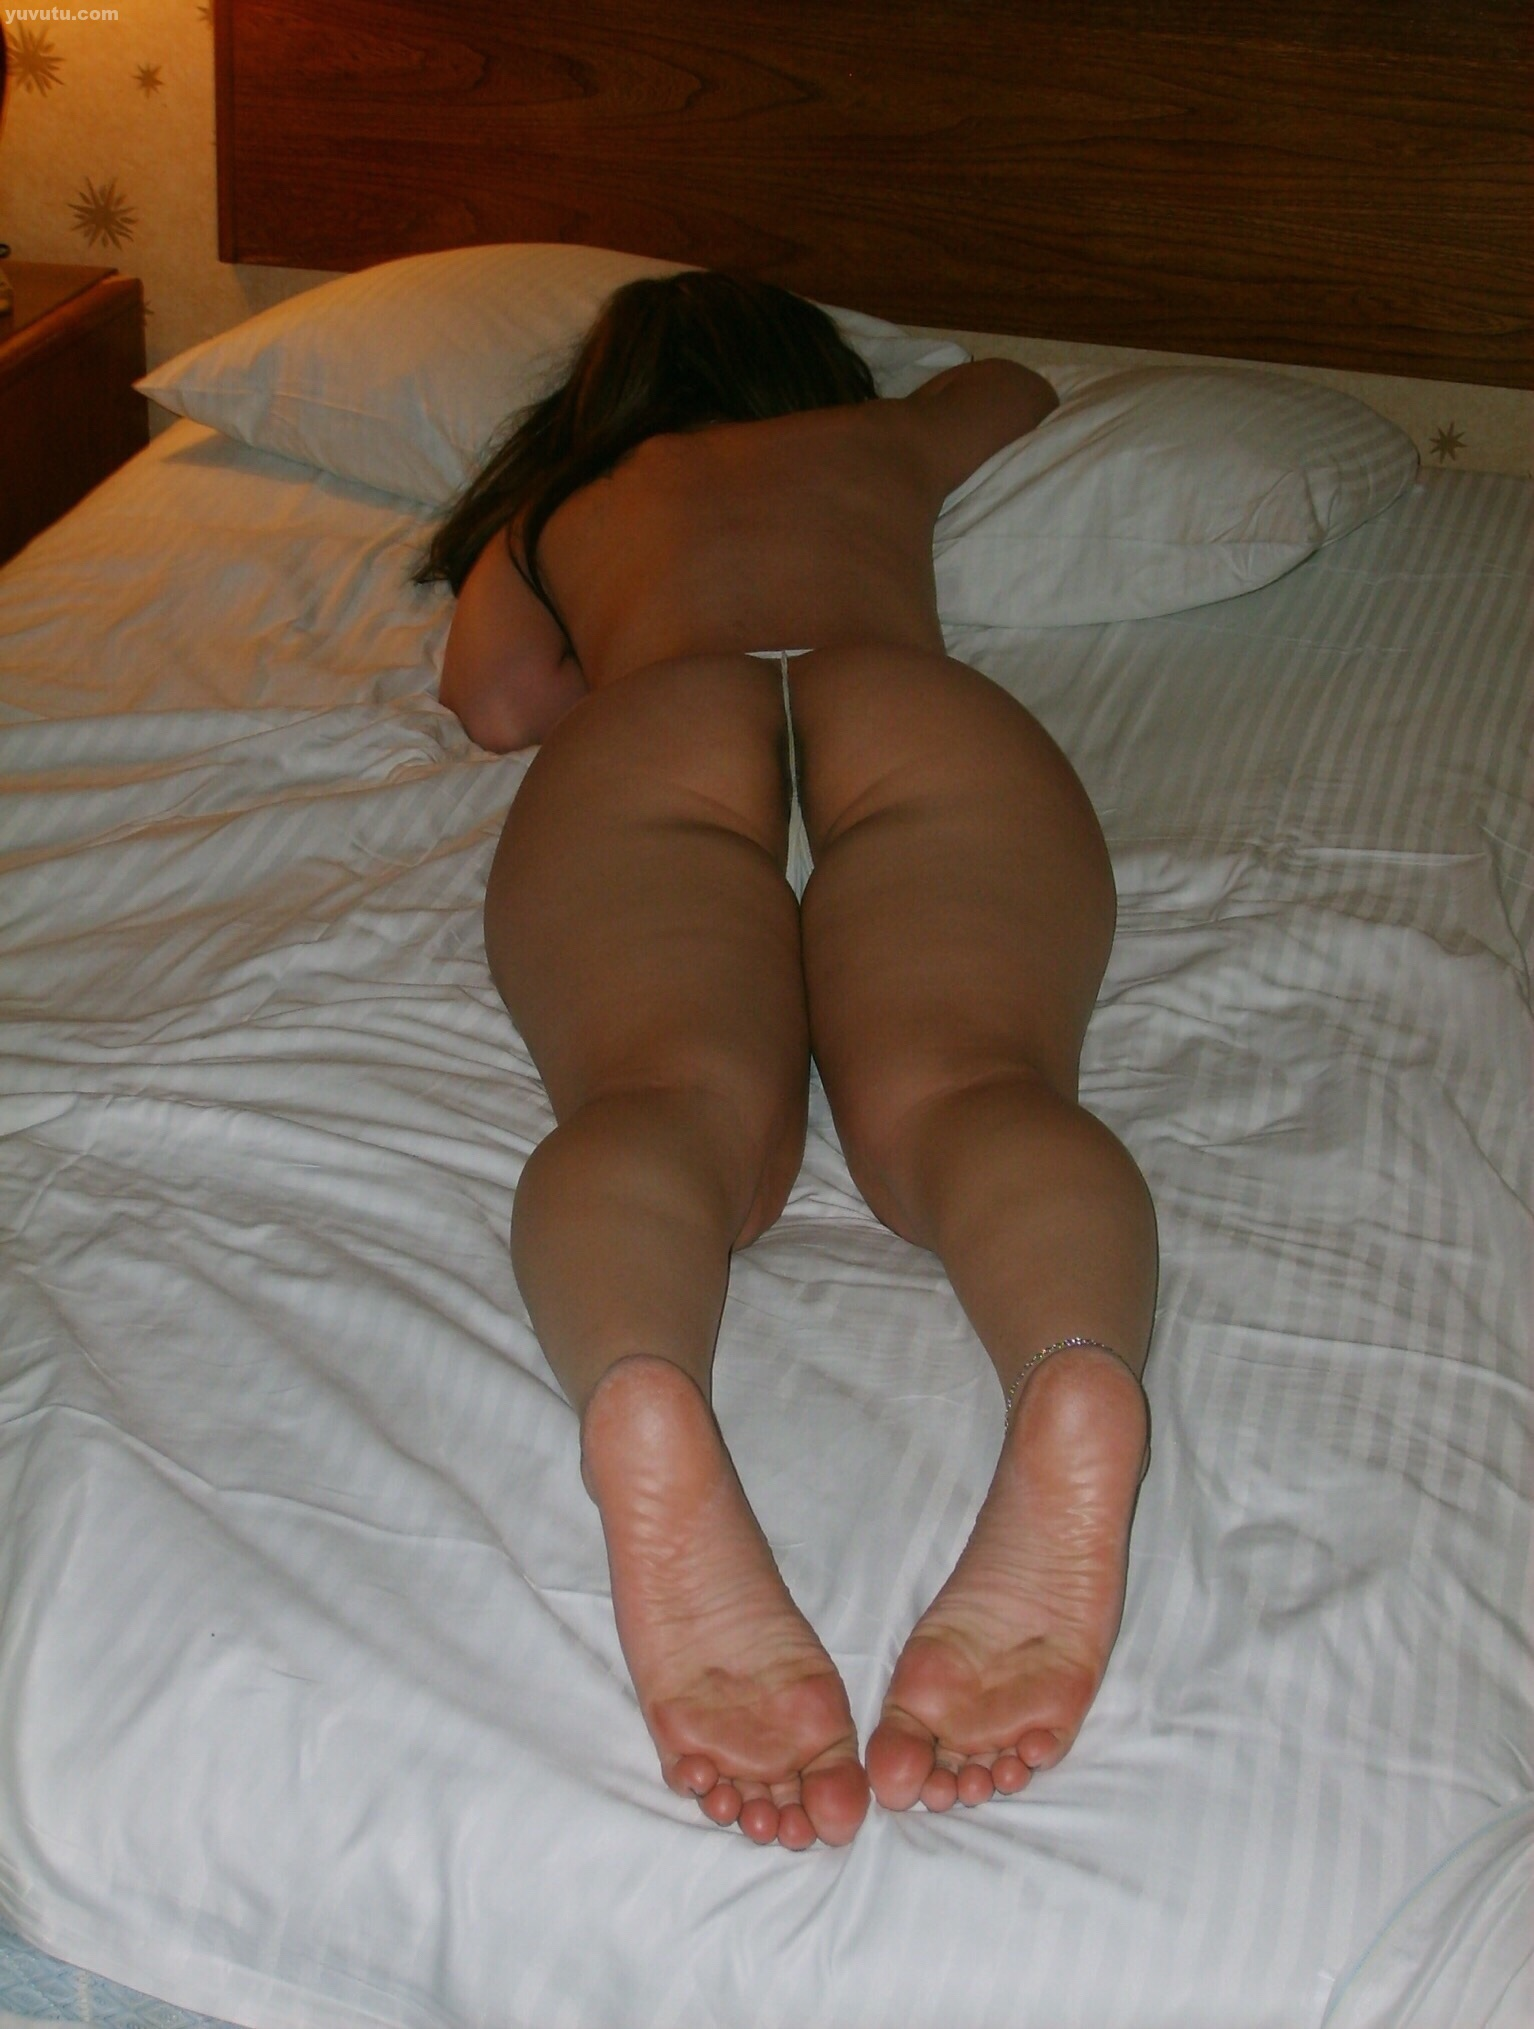 galleries Amateur feet ass and